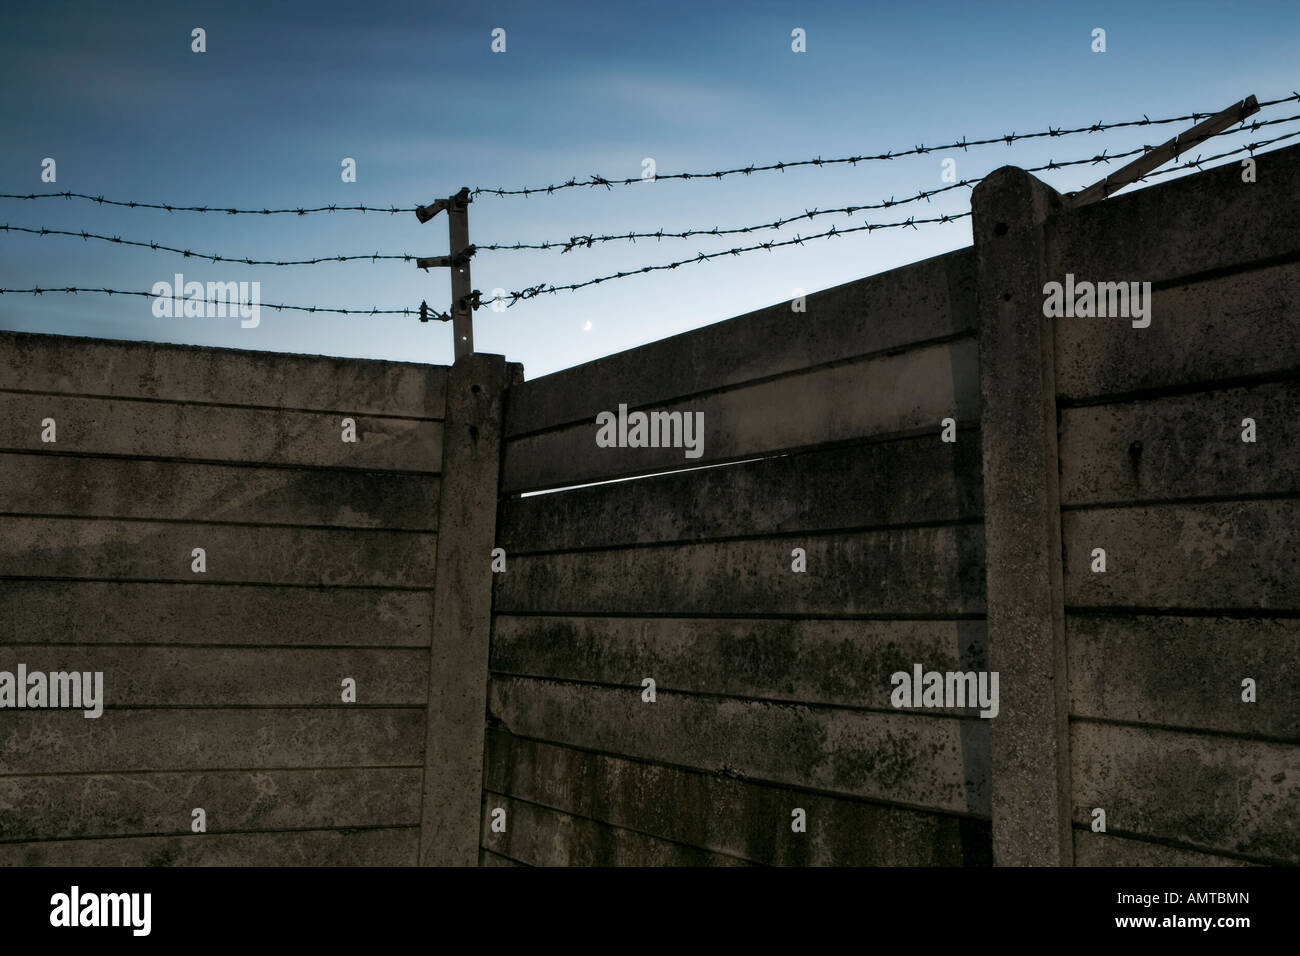 Prison-style high concrete slab wall with barbed wire fenced area above - Stock Image